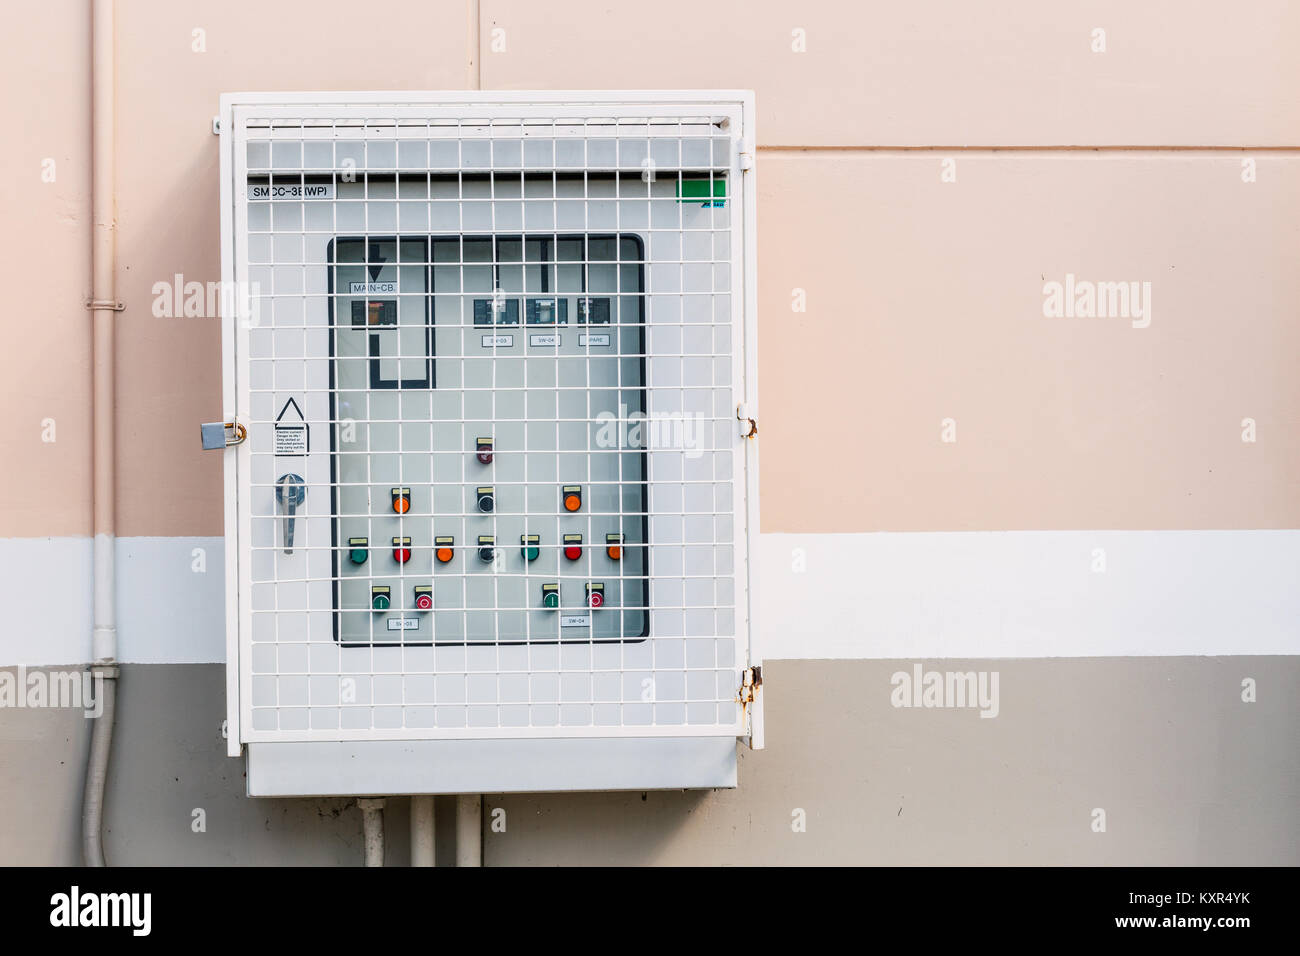 fuse box lock stock photos & fuse box lock stock images alamy fuse box car outdoor electricity switch power control safety box on wall with space for text stock image